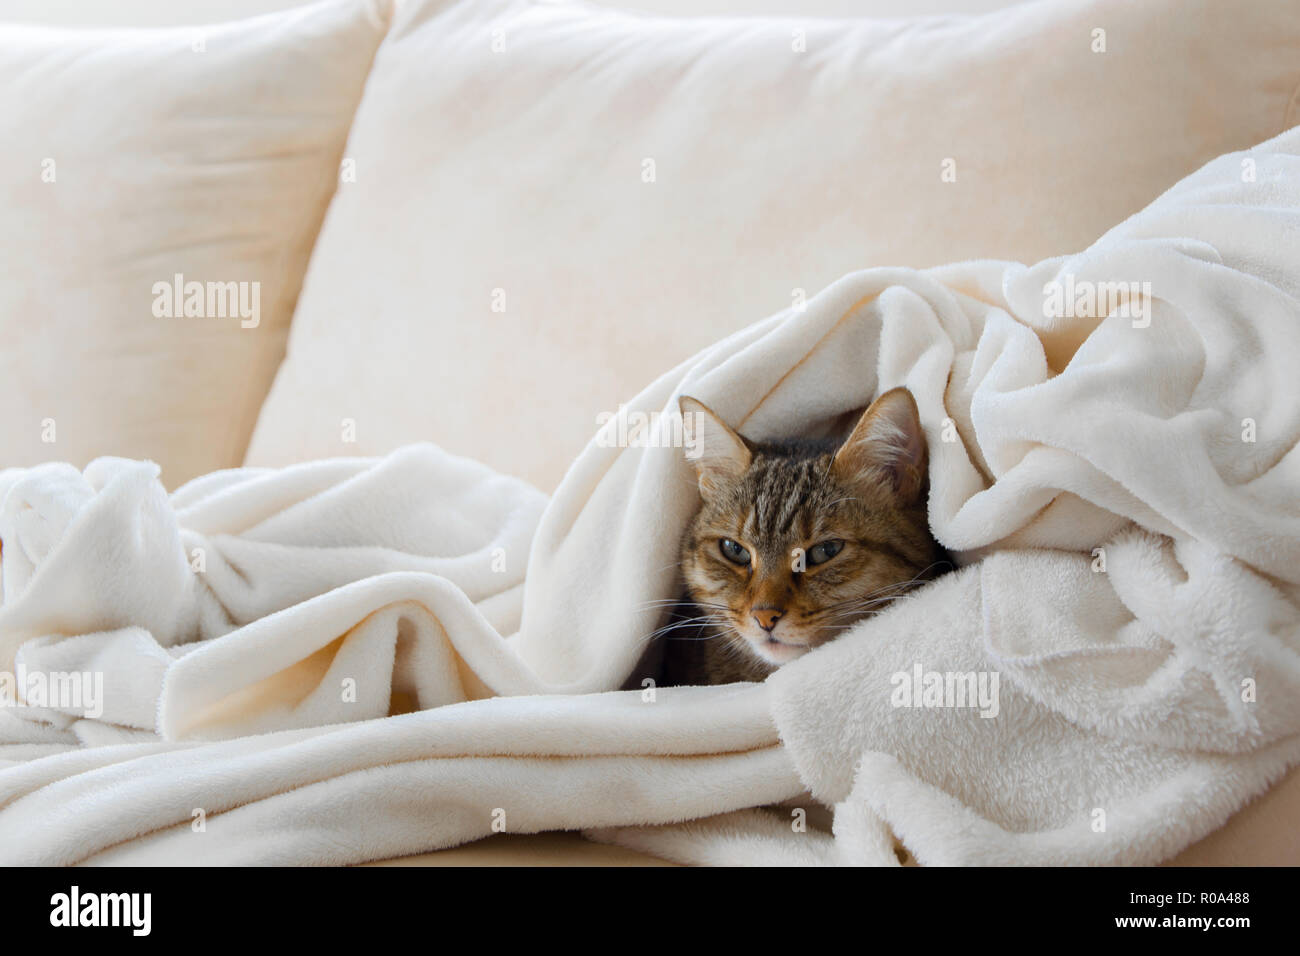 Beautiful european cat is relaxing in the soft white blanket on a sofa - Stock Image